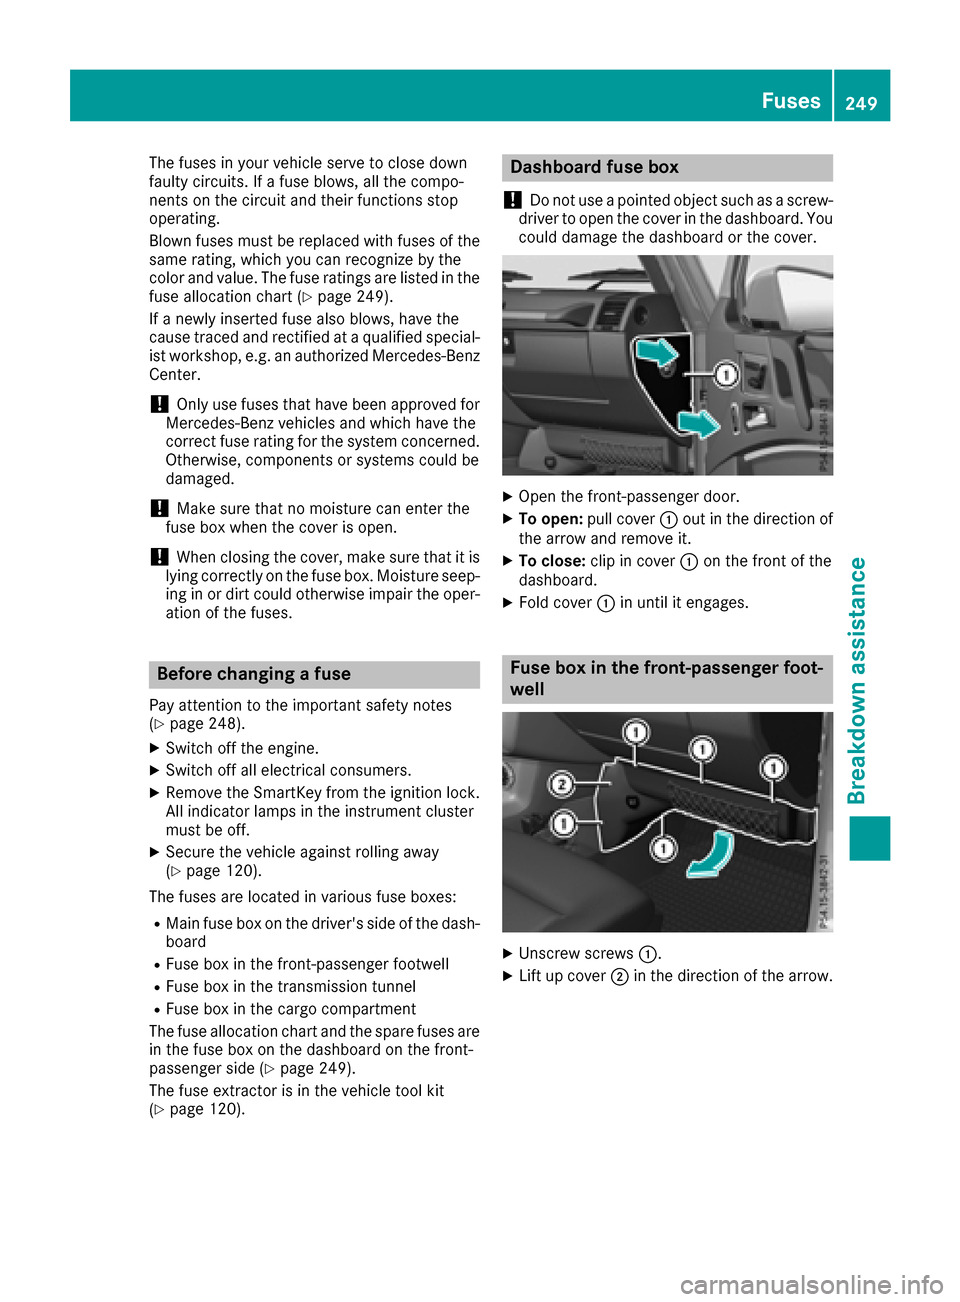 Mercedes Benz G Class 2017 W463 Owners Manual Car Fuse Box Tool Page 251 The Fuses In Your Vehicle